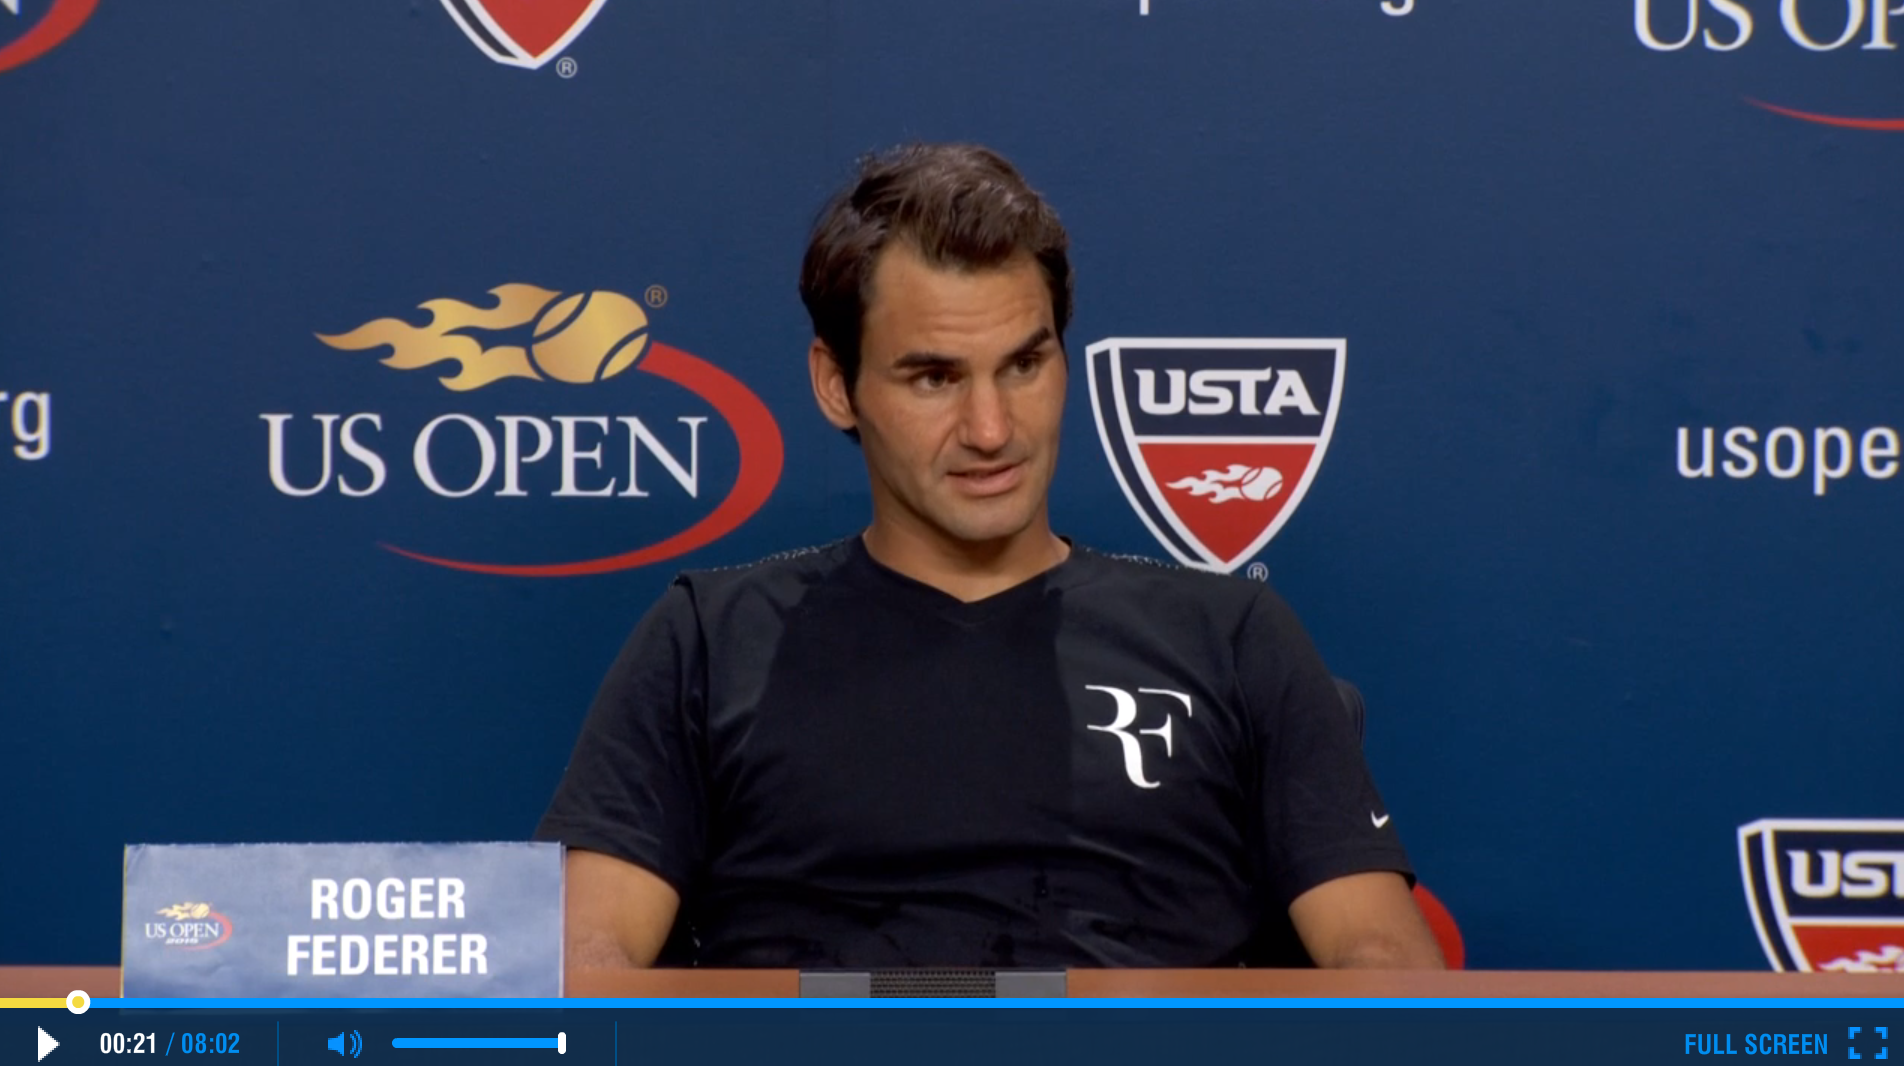 Federer US Open 2015 Third Round Press Conference